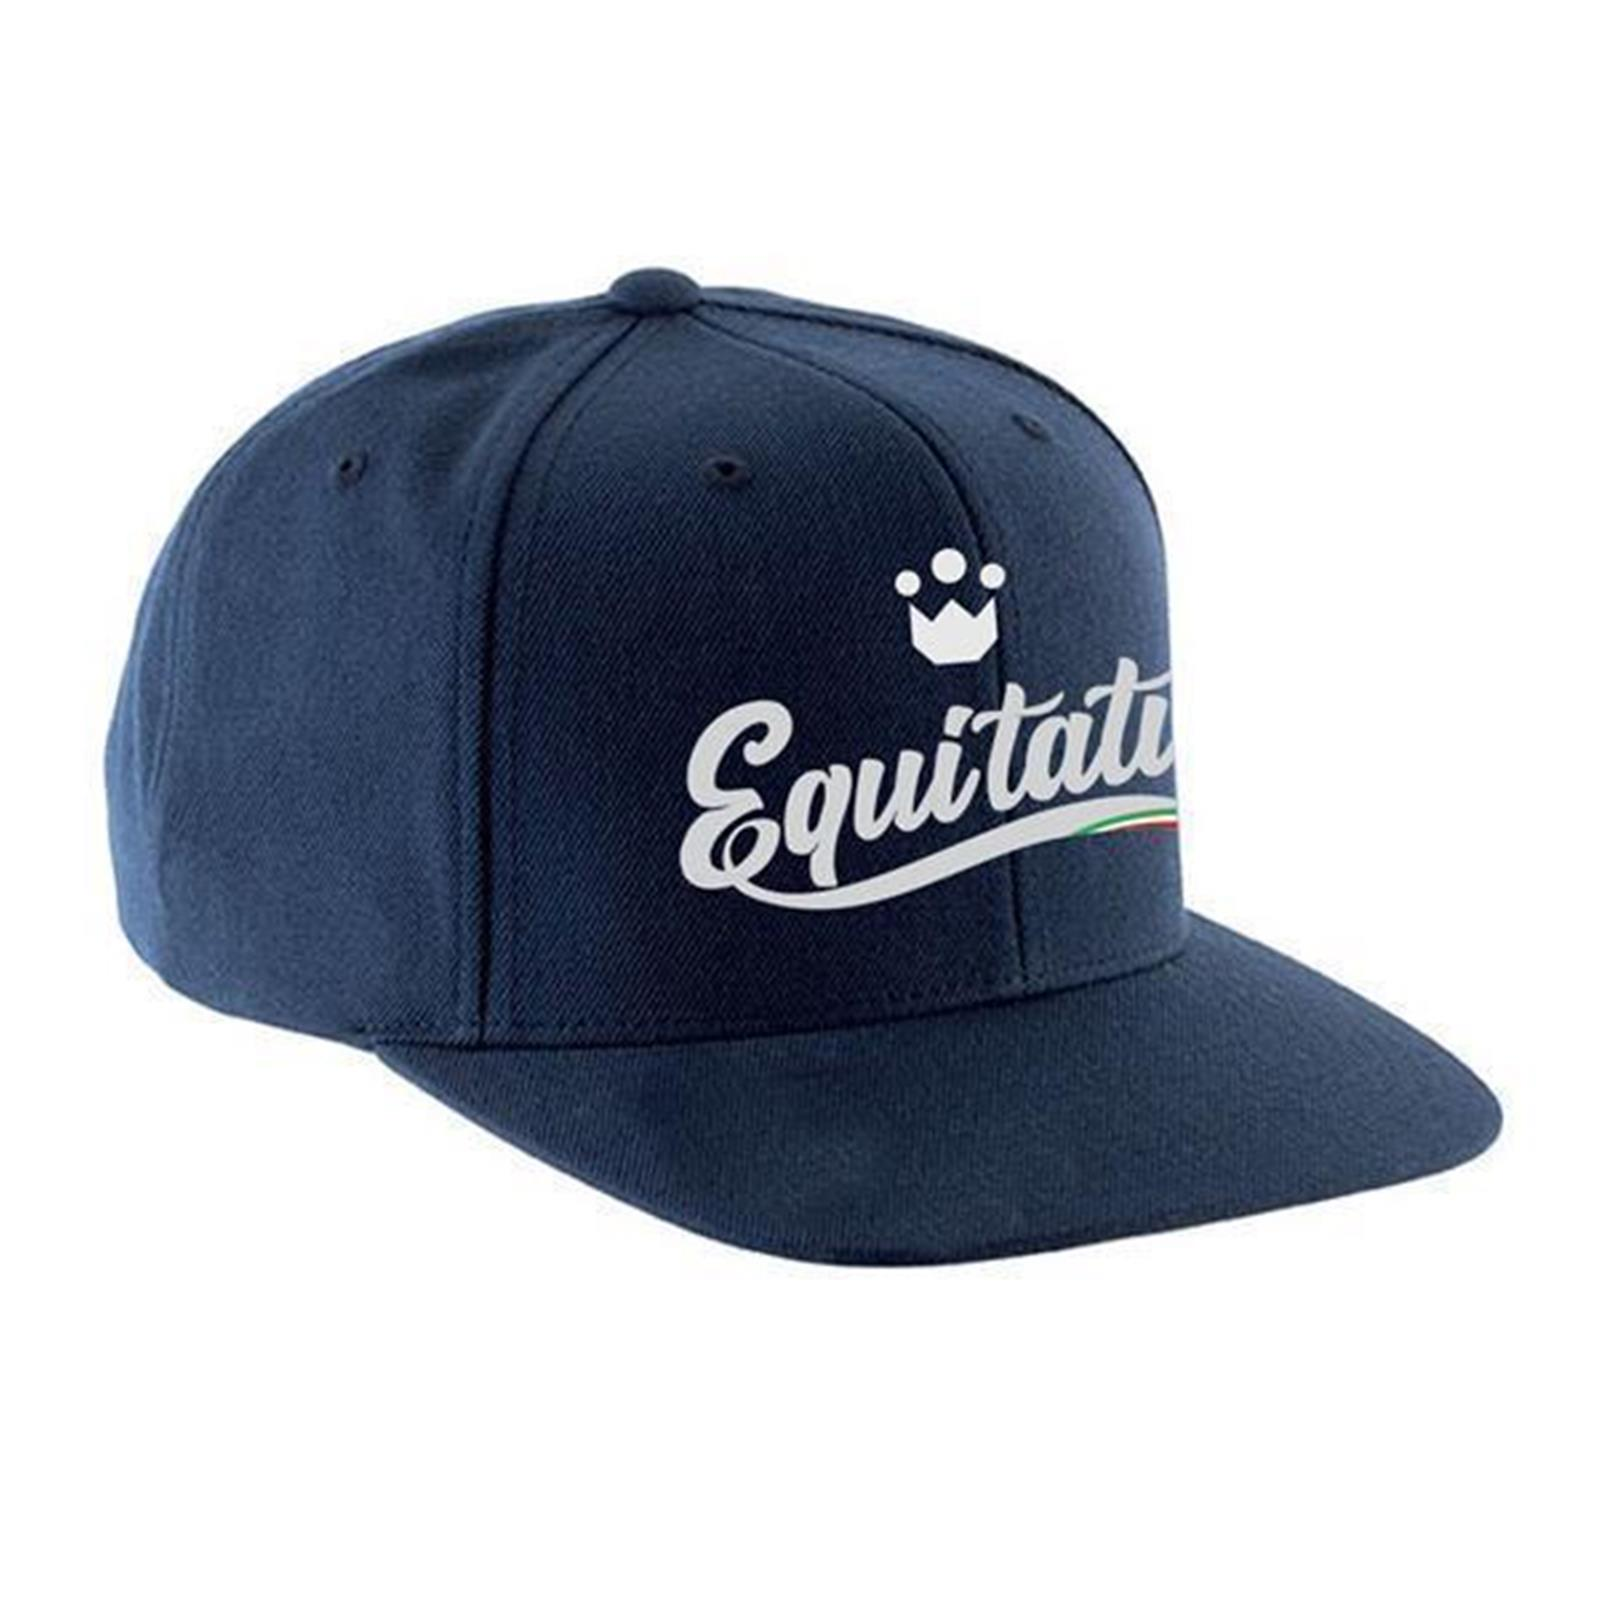 EQUITATUS CAPPELLO 9FIFTY 1991 REGOLABILE